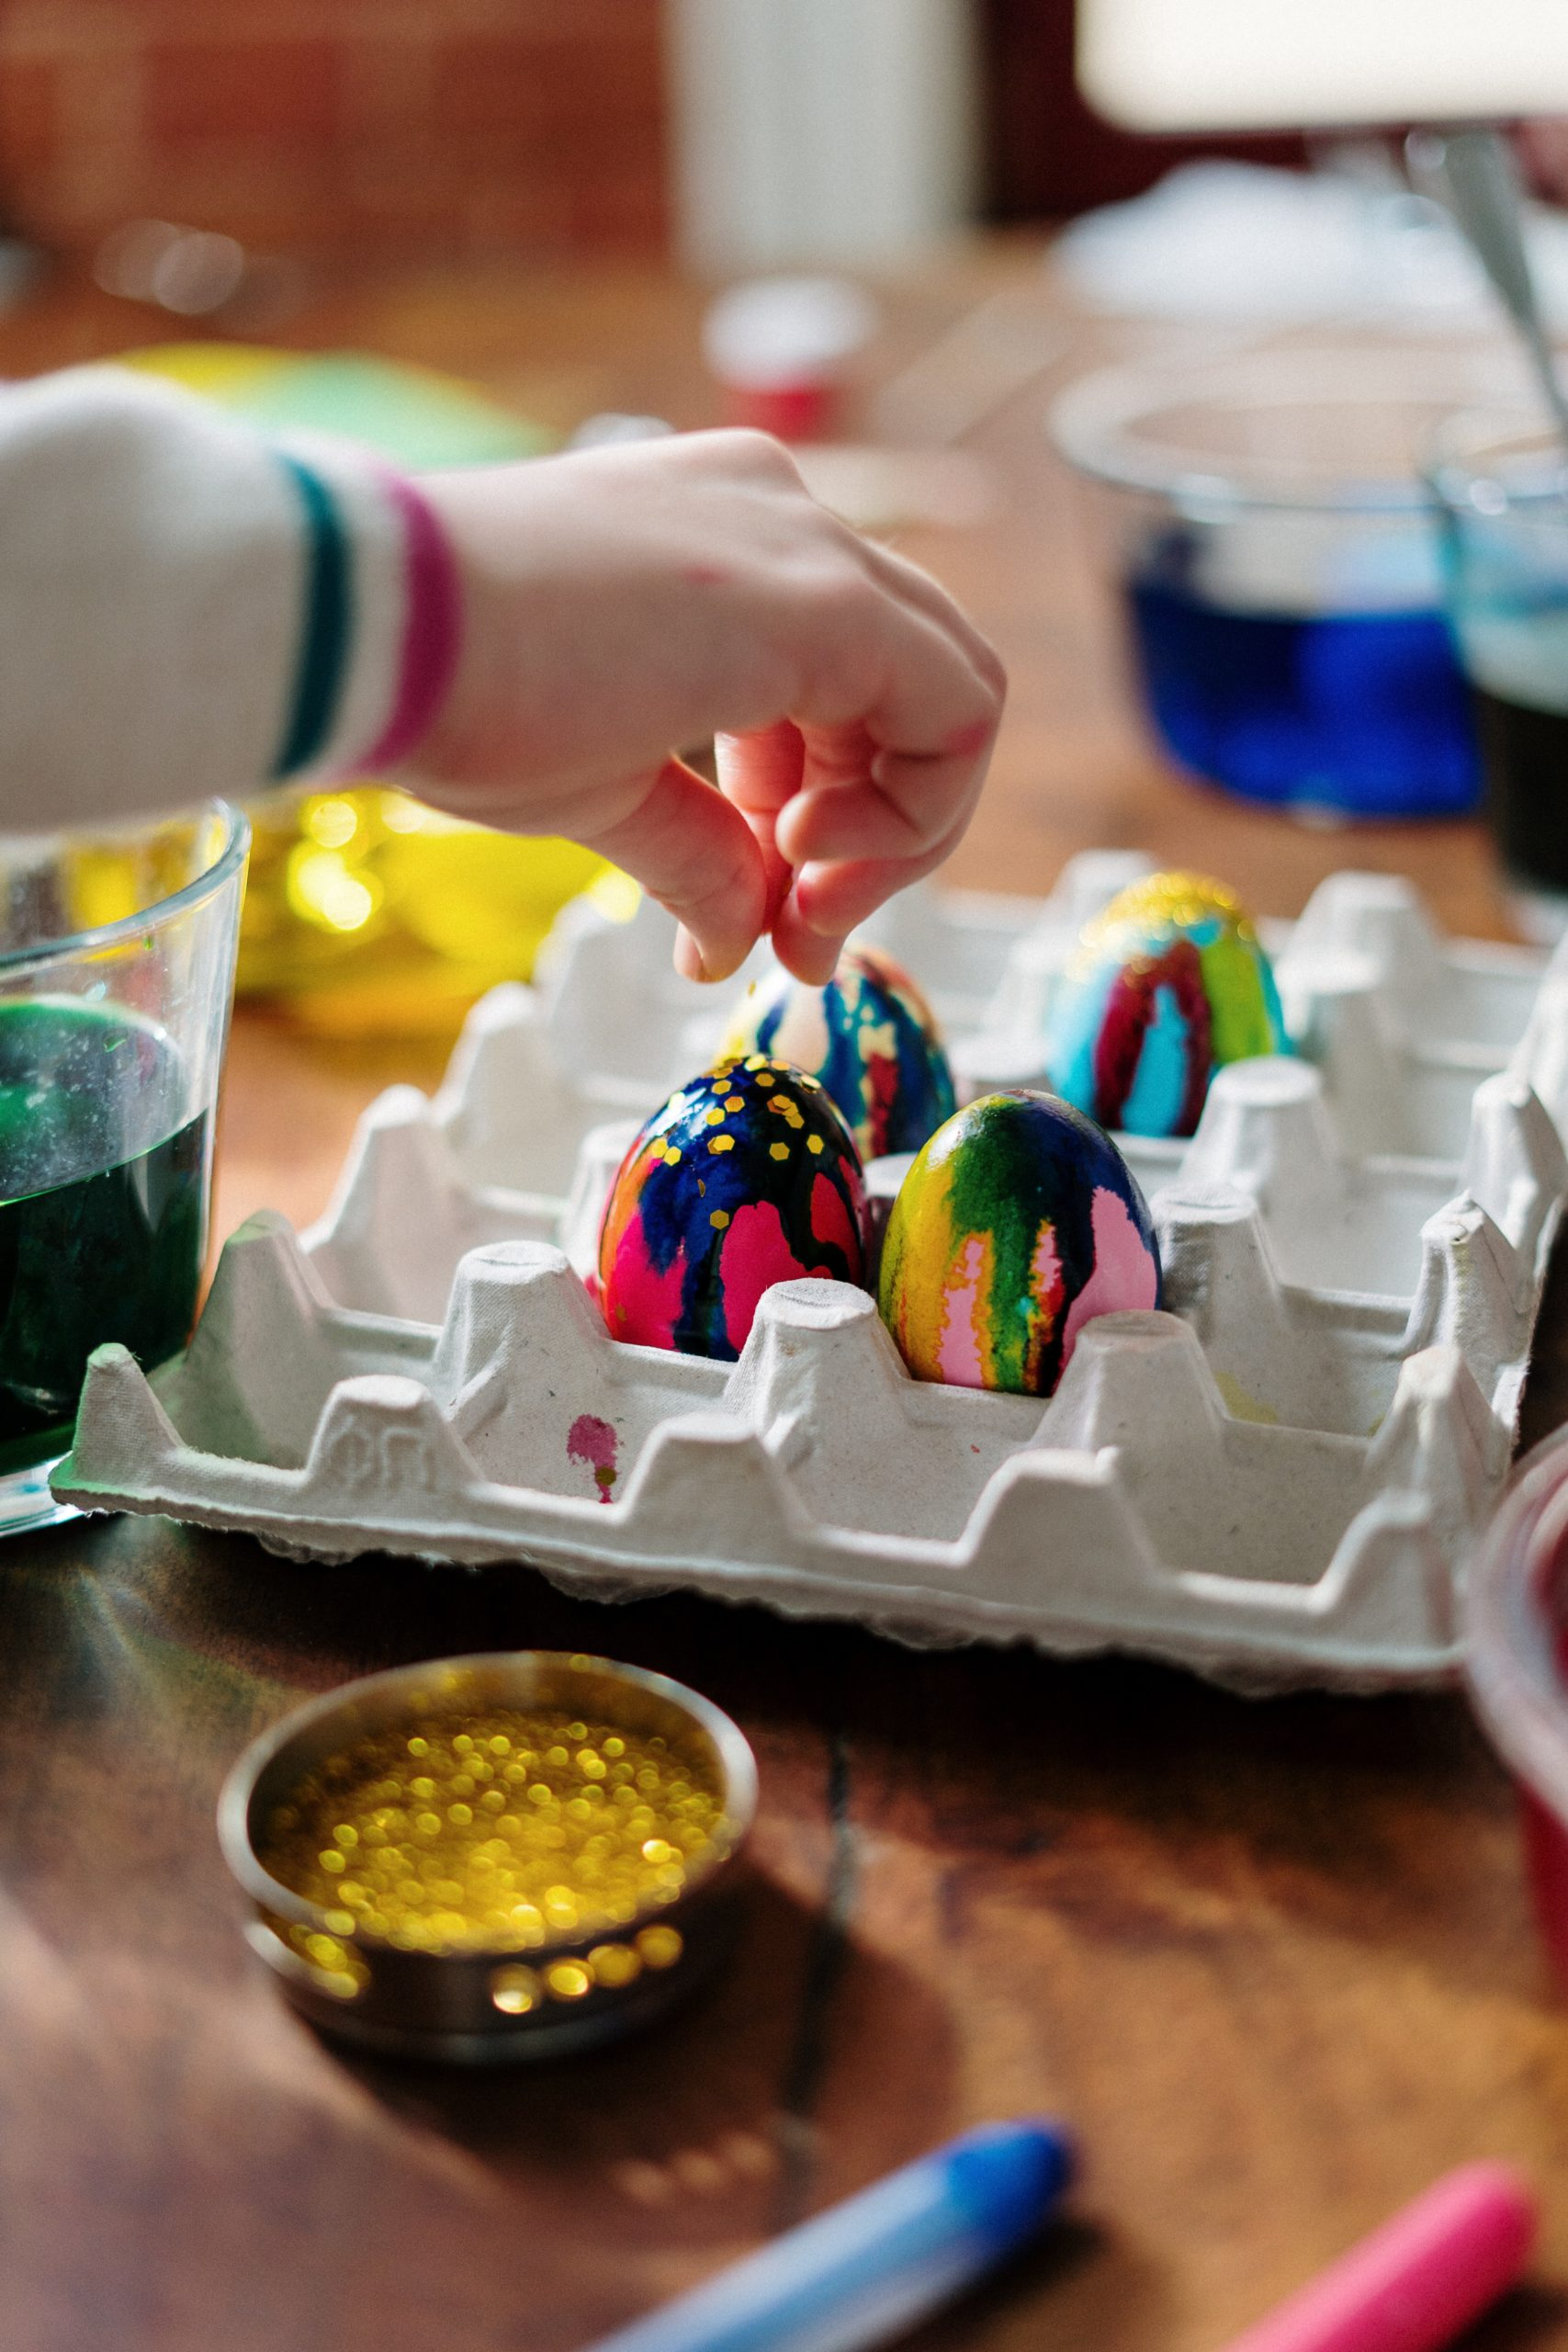 Art And Crafts - Everything About Art And Craft